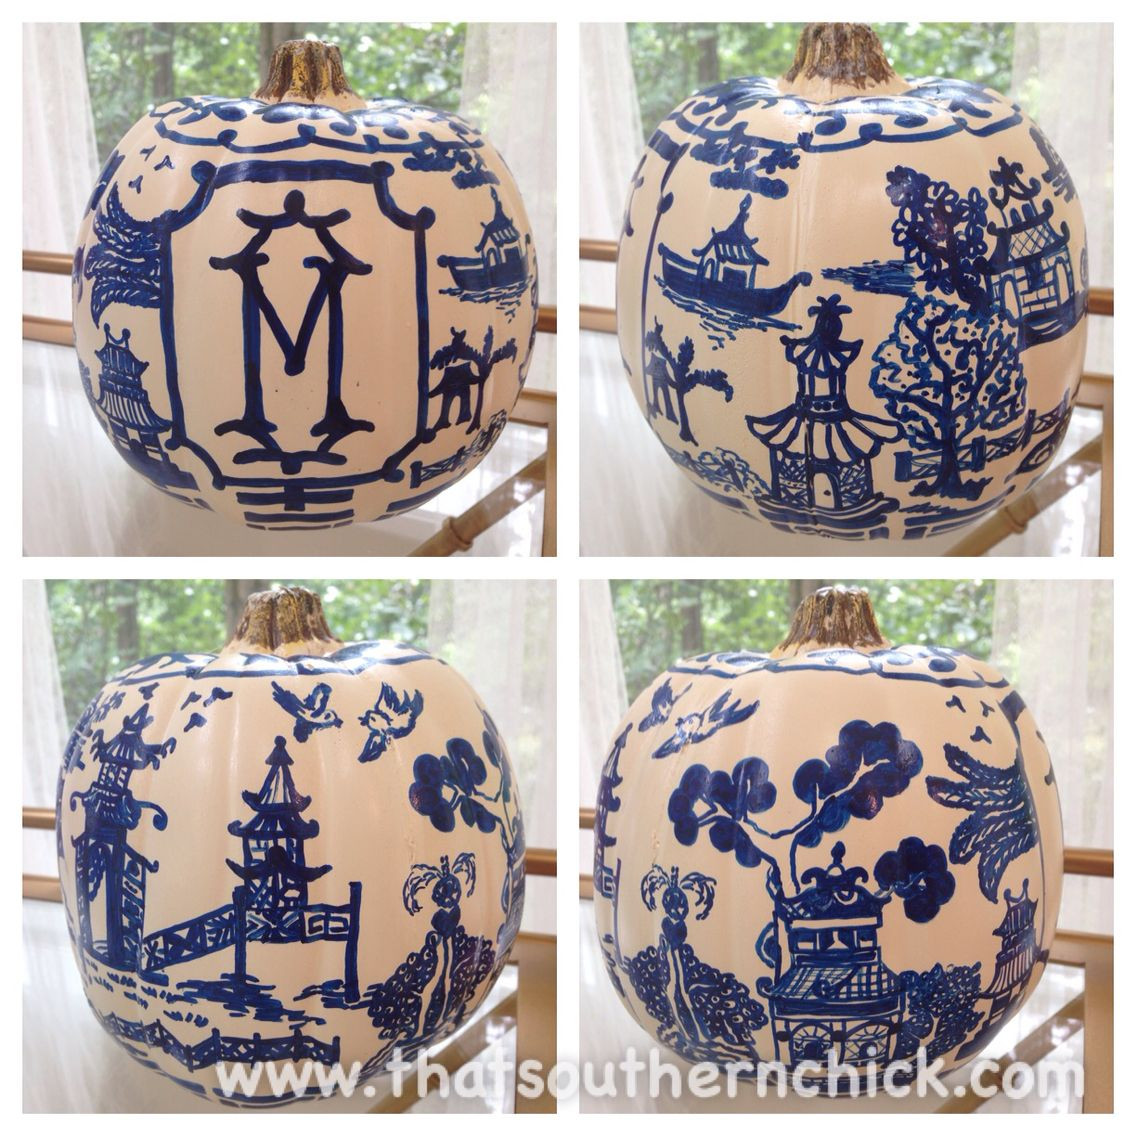 blue willow vase of chinoiserie inspired painted pumpkin craft by that southern chick in chinoiserie inspired painted pumpkin craft by that southern chick blue willow china blue and white